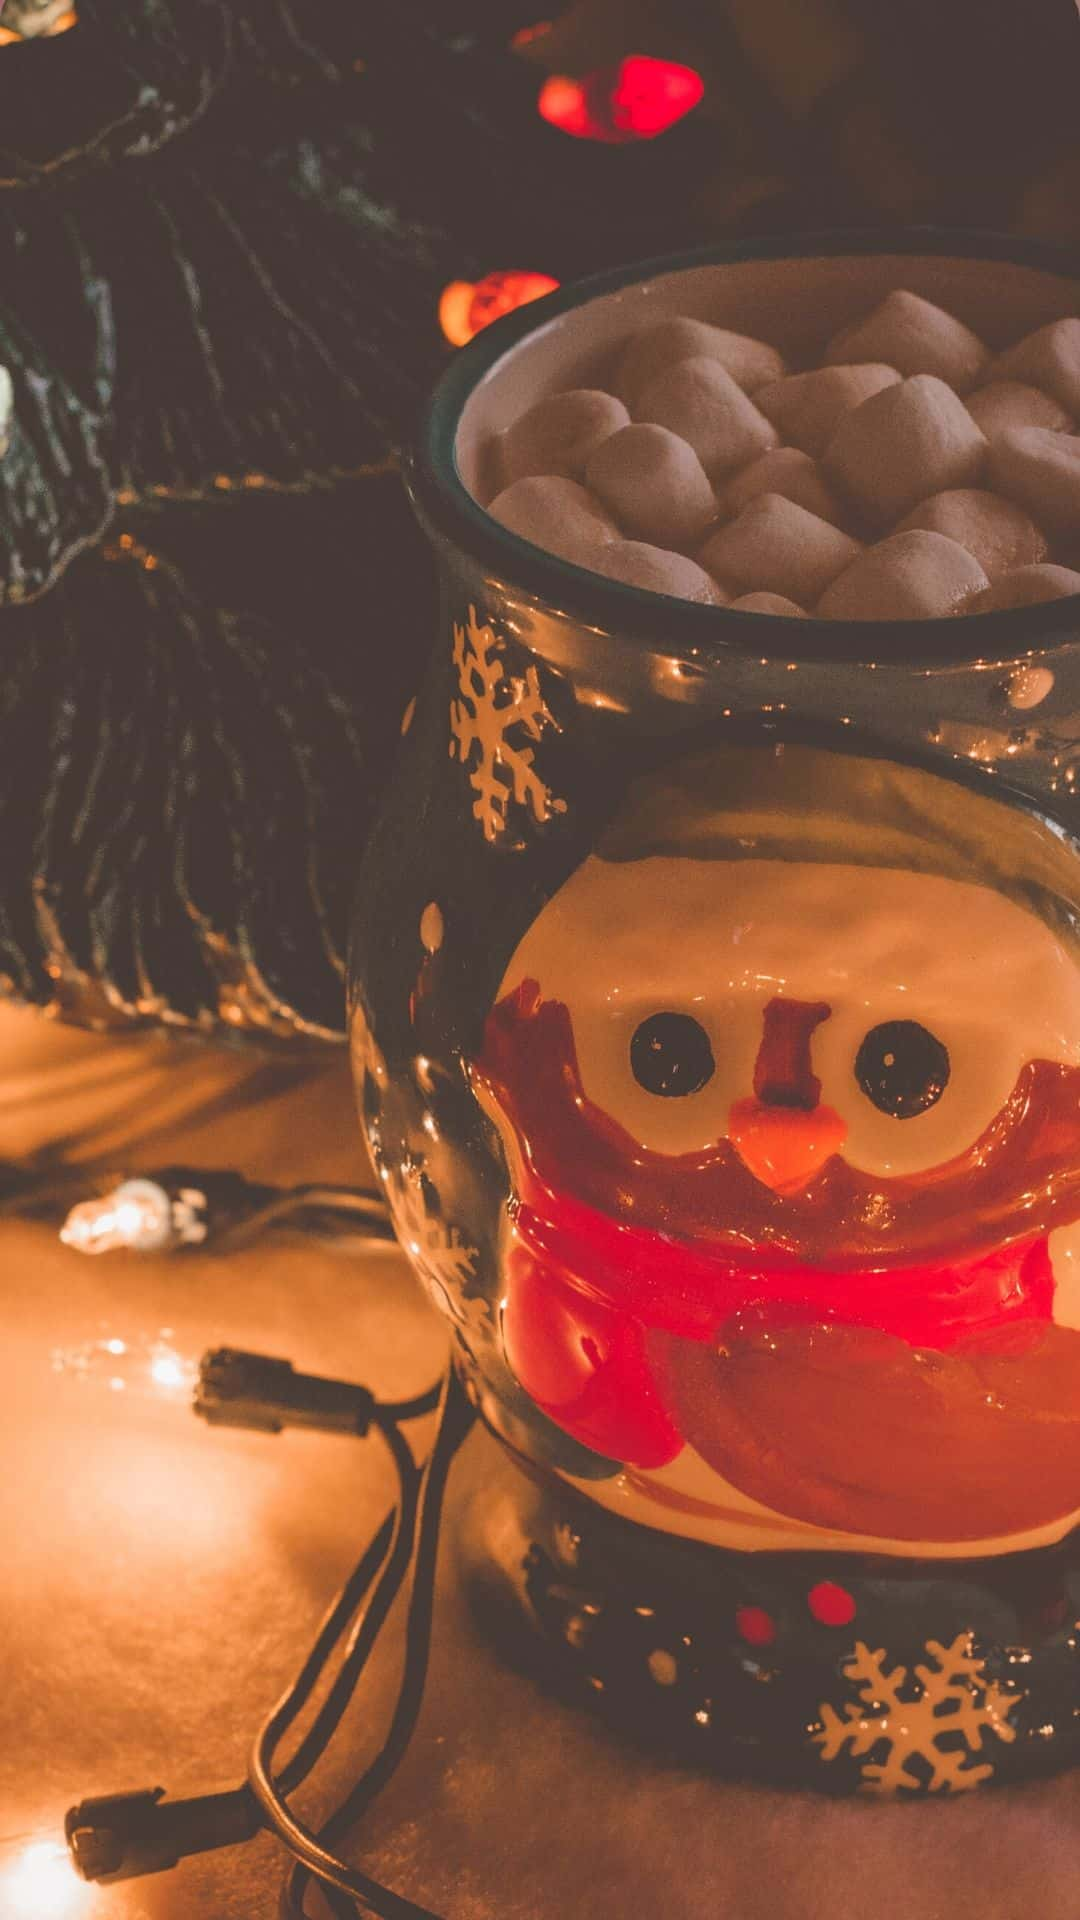 Cozy Christmas Backgrounds For iPhone Wallpaper Christmas Hot Chocolate